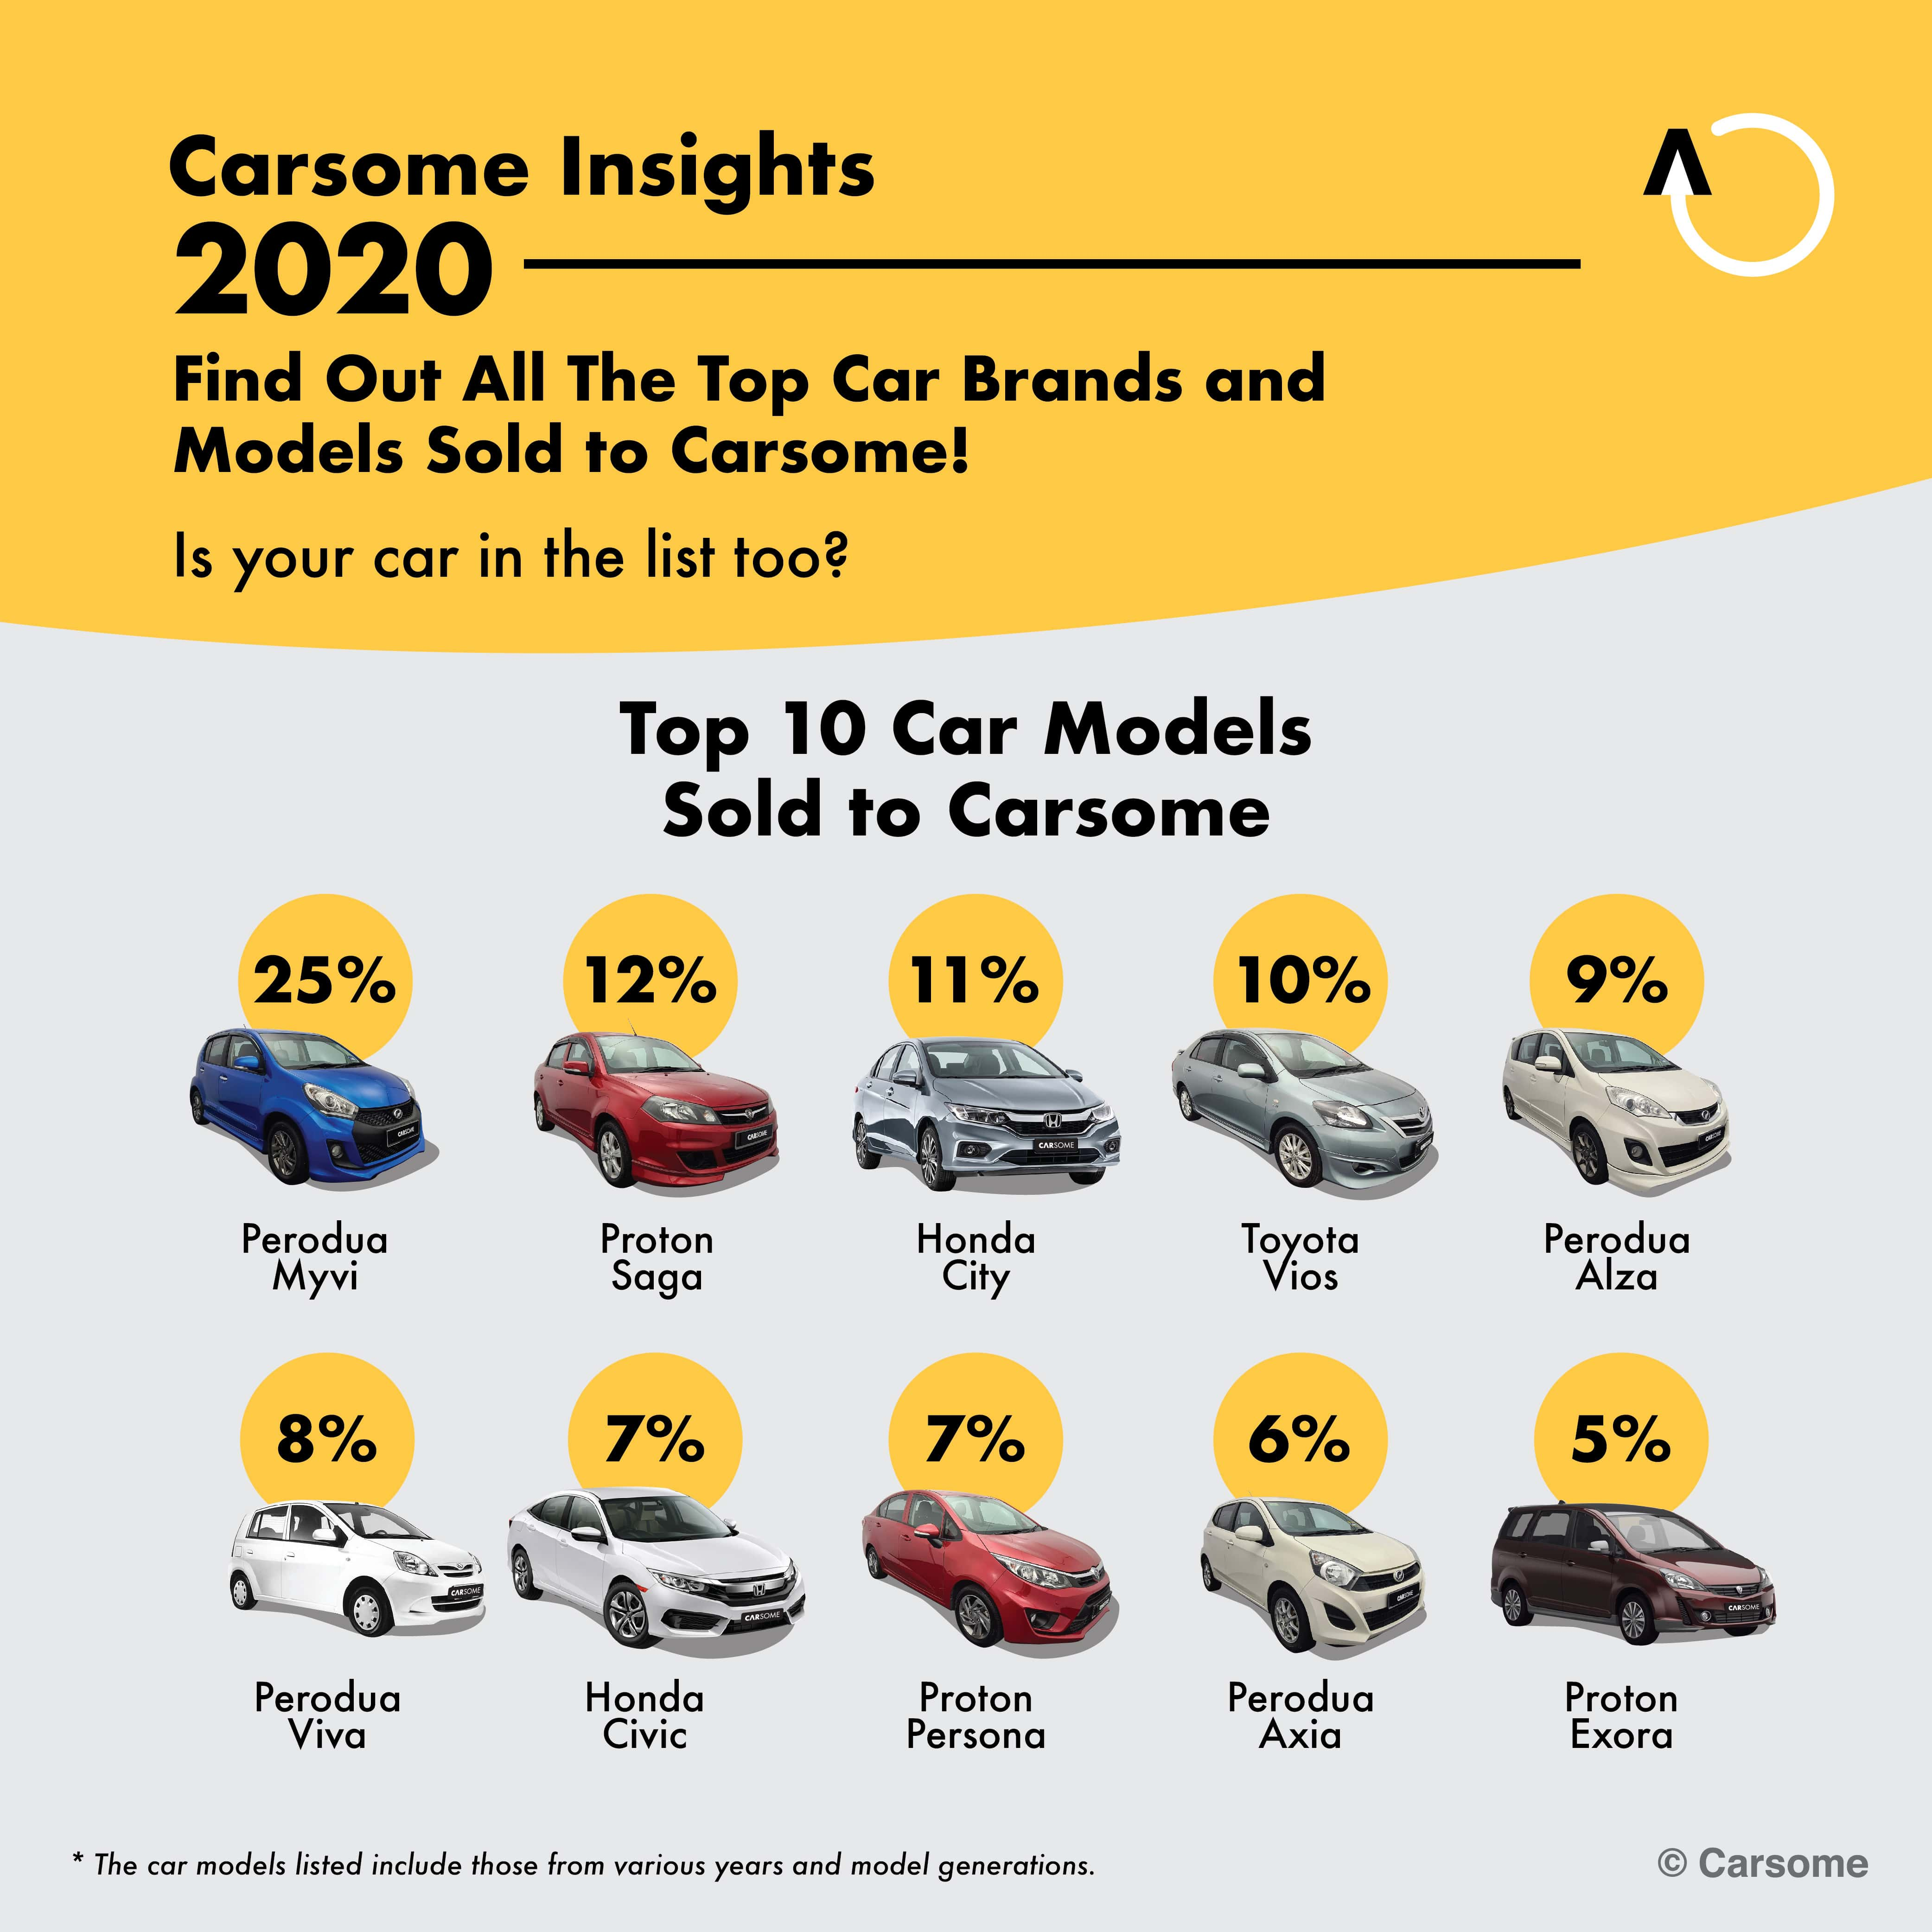 Top Cars Sold to Carsome